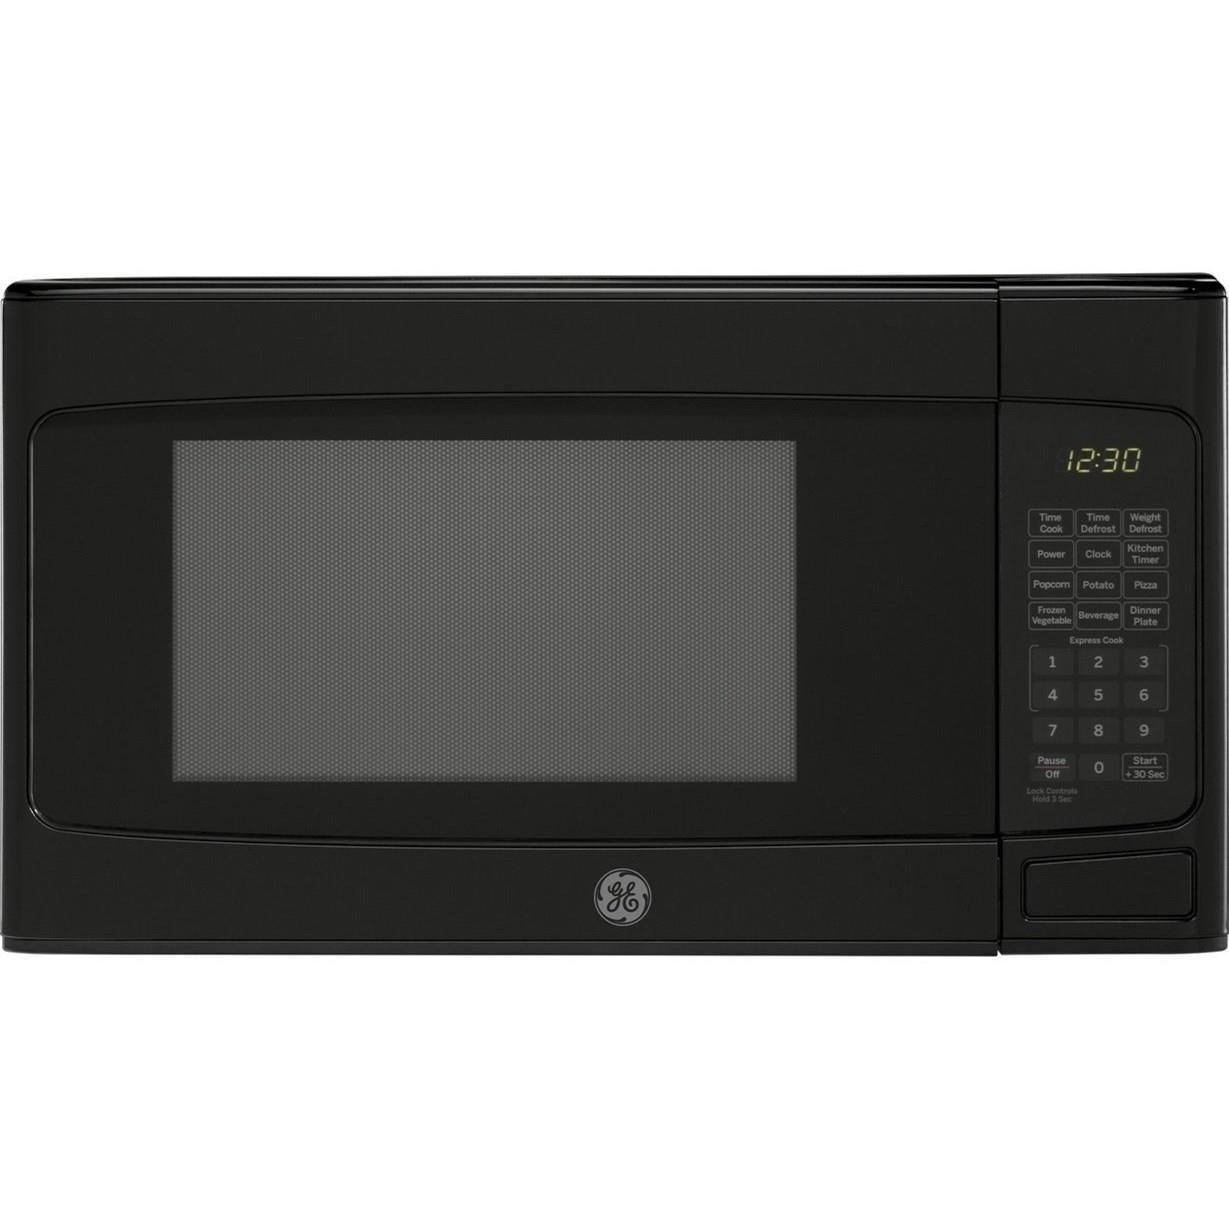 GE Microwaves 1.1 Cu. Ft. Countertop Microwave by GE Appliances at Westrich Furniture & Appliances